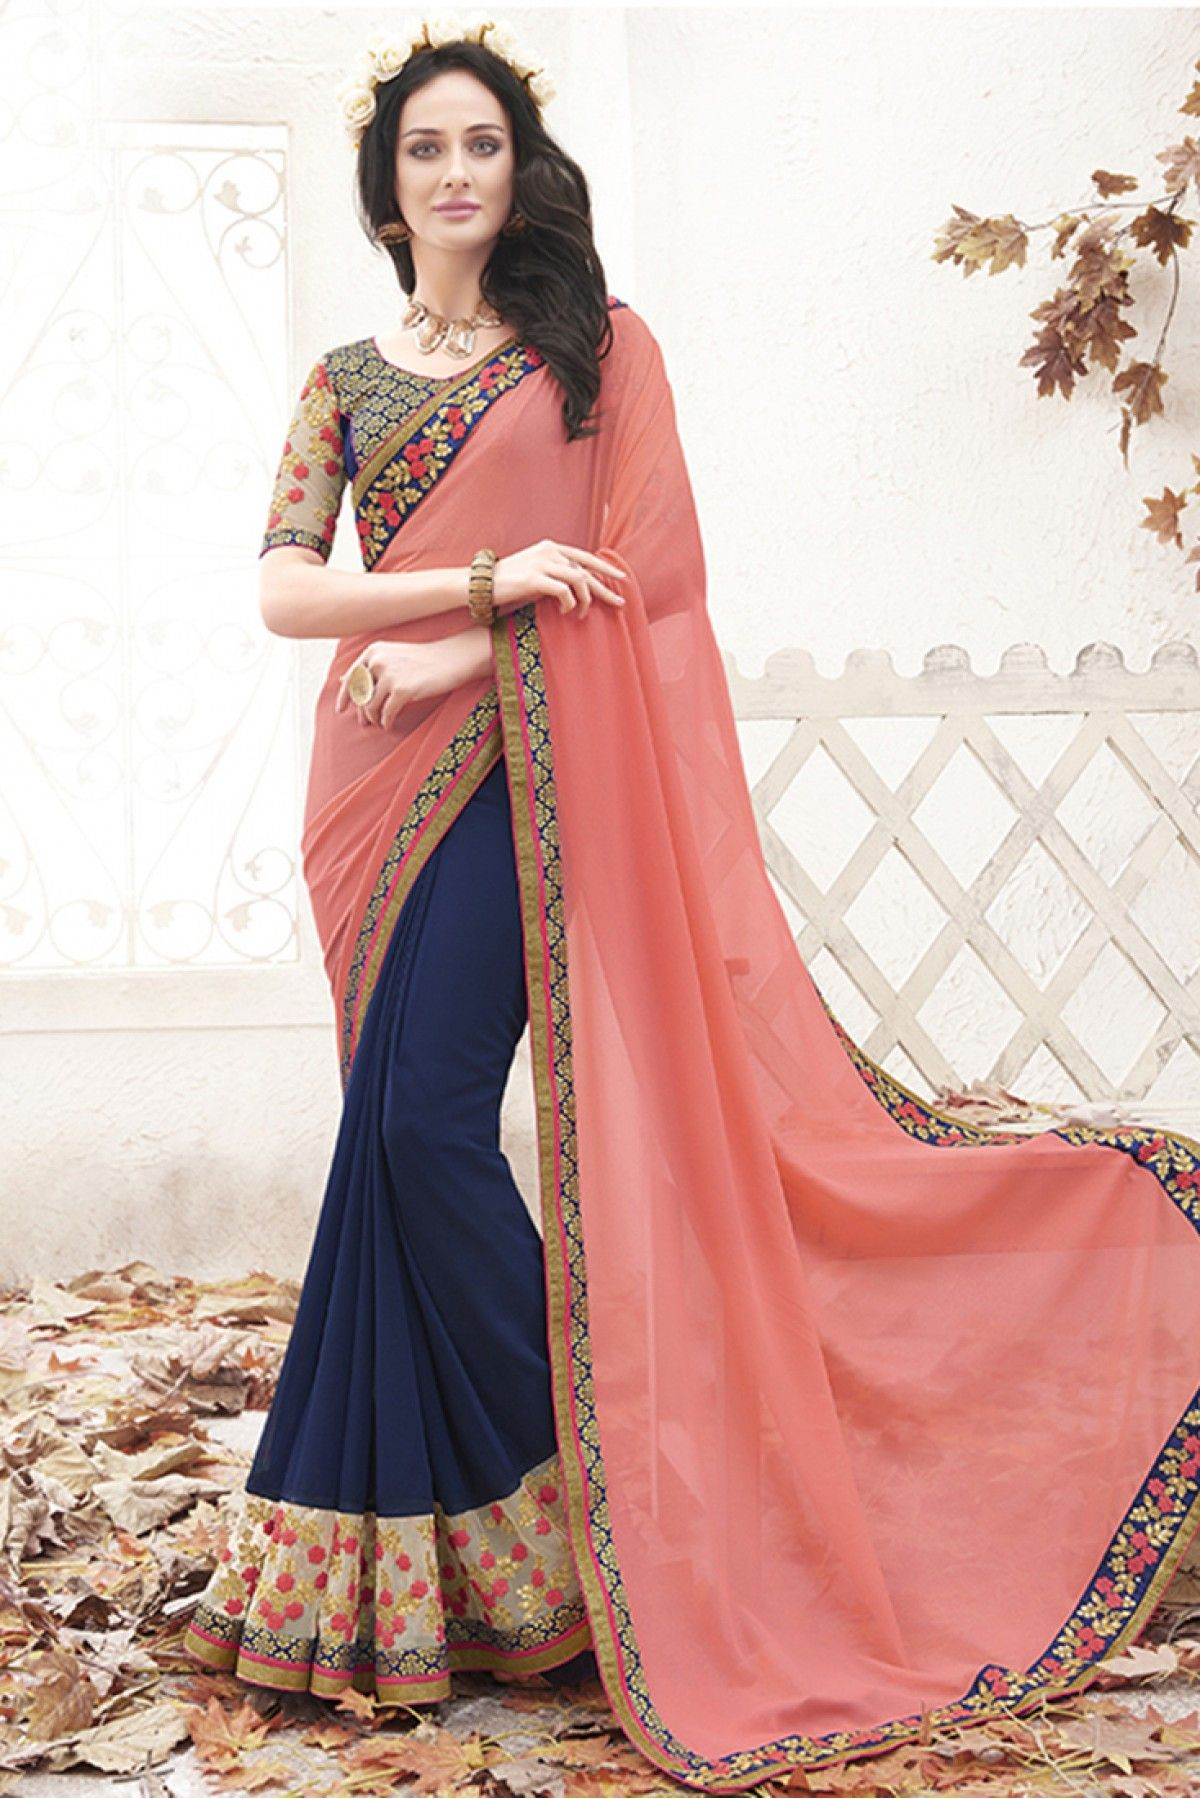 fceab9220db Peach Colour Georgette Fabric Party Wear Designer Saree Comes With Matching  Blouse. This Saree Is Crafted With Lace Work. This Saree Comes With  Unstitched ...